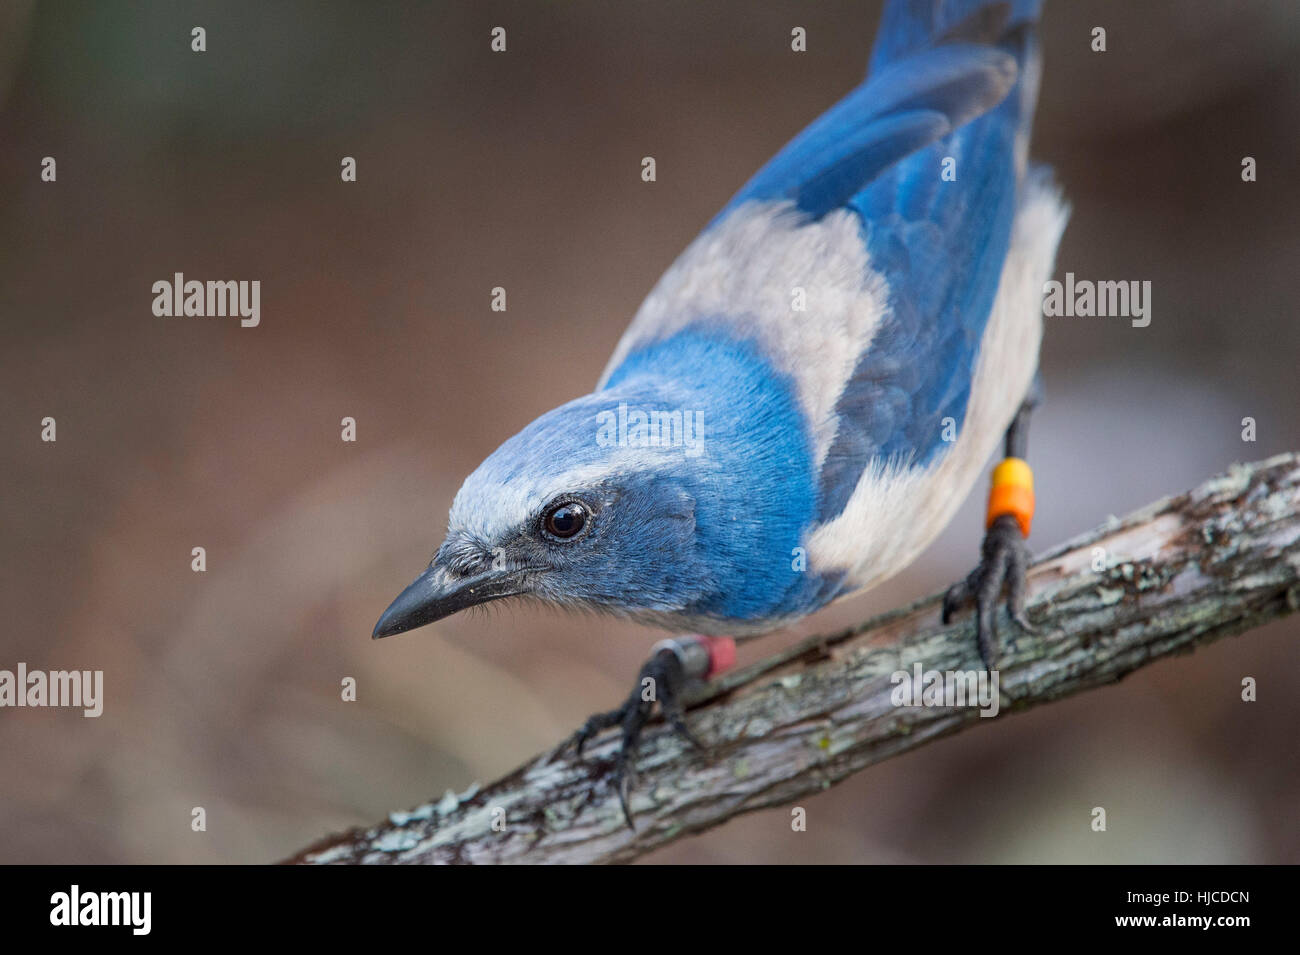 A close up of a curious Florida Scrub Jay perched on a branch. Stock Photo